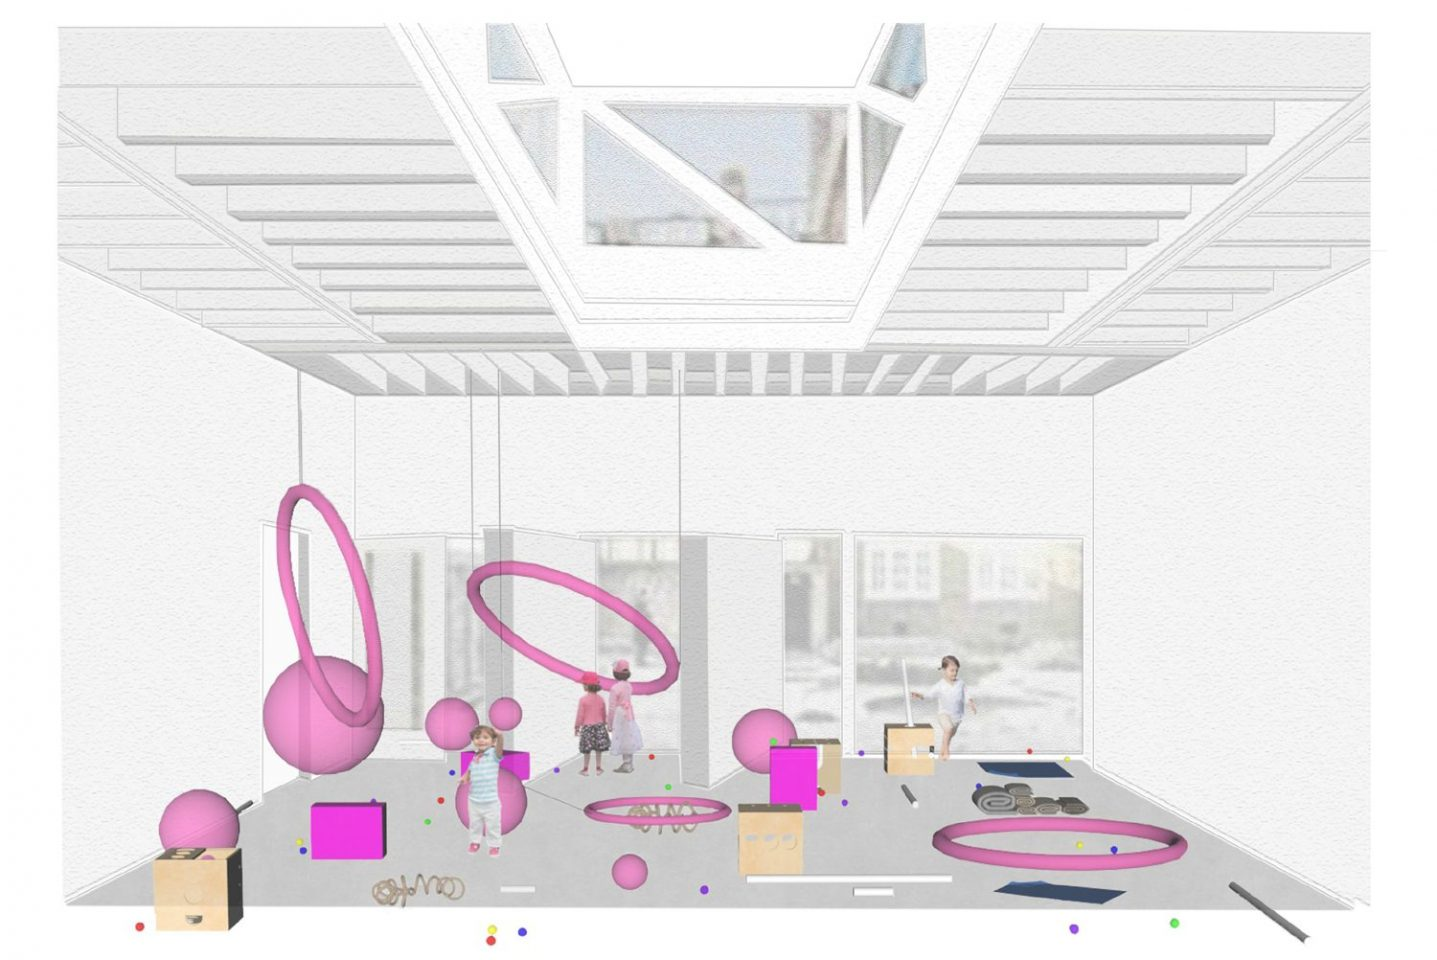 Illustration of the Clore Studio showing suspended hula hoops from the ceiling and balls on the floor to give the impression of a solar system